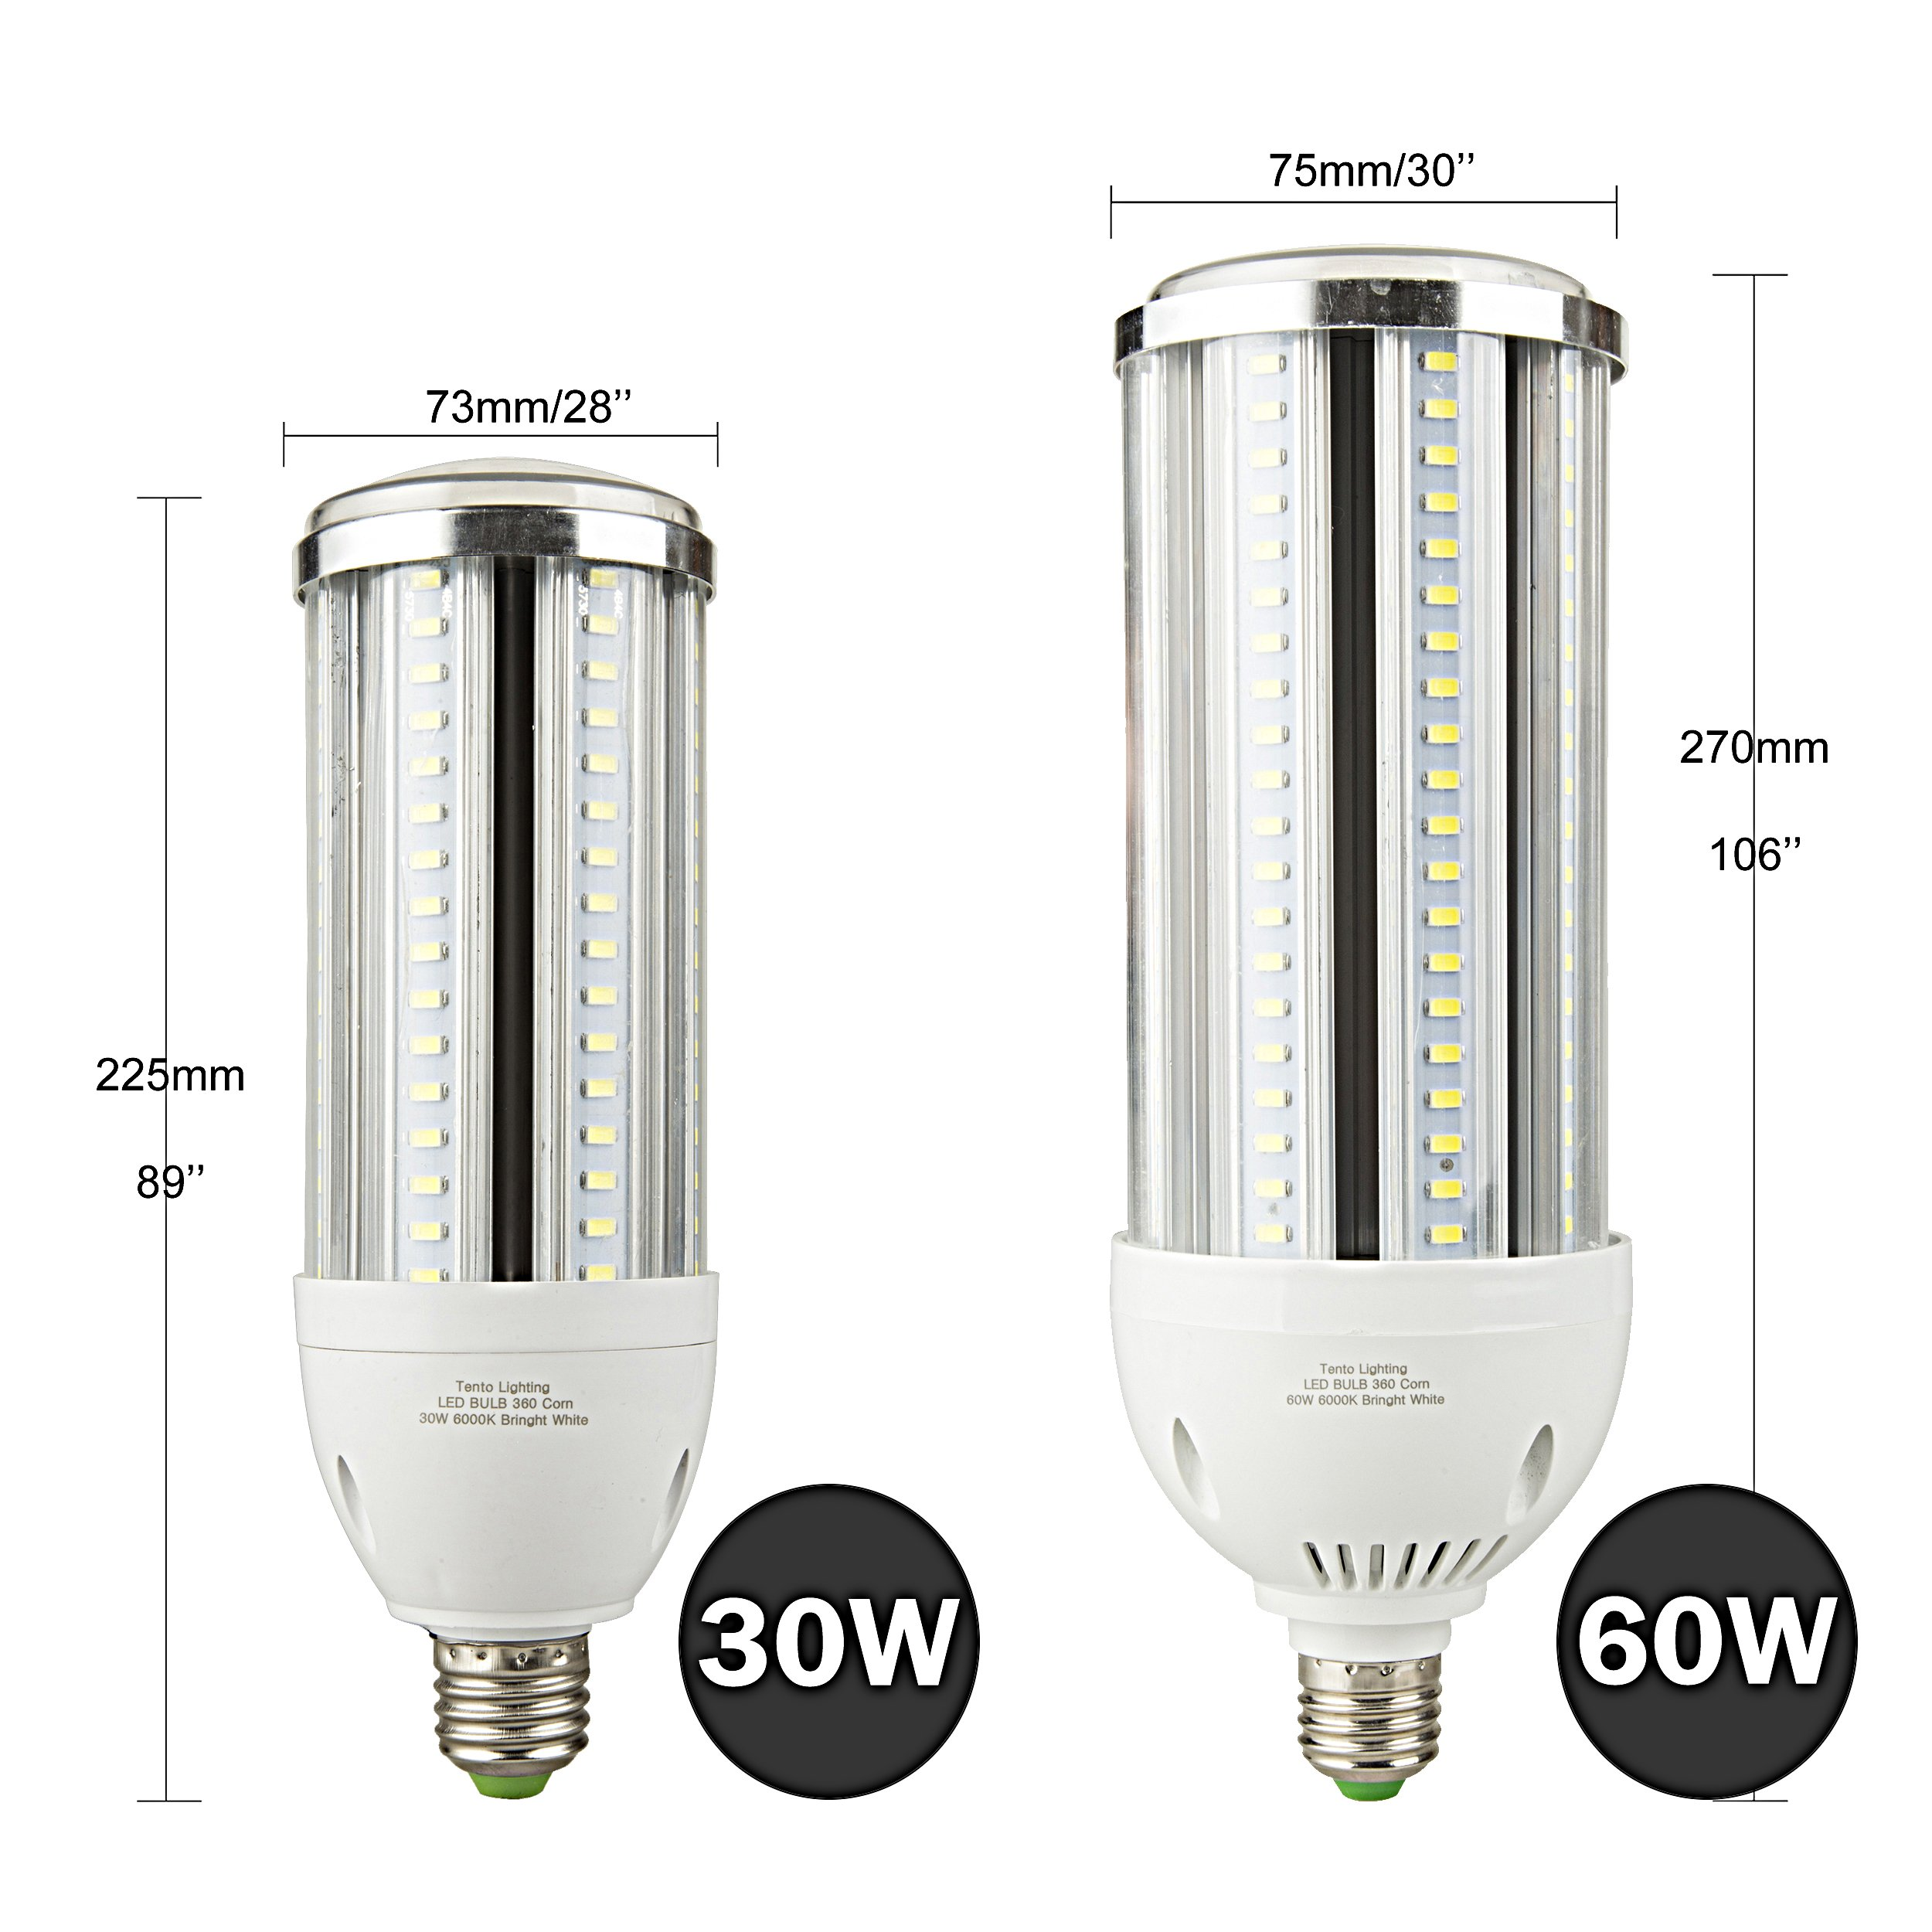 30w LED Corn Bulb E26 Daylight Bright White Light 6000k 3300 Lumens Street Area Light Replacement for Metal Halide HID, CFL, HPS by tento (Image #5)